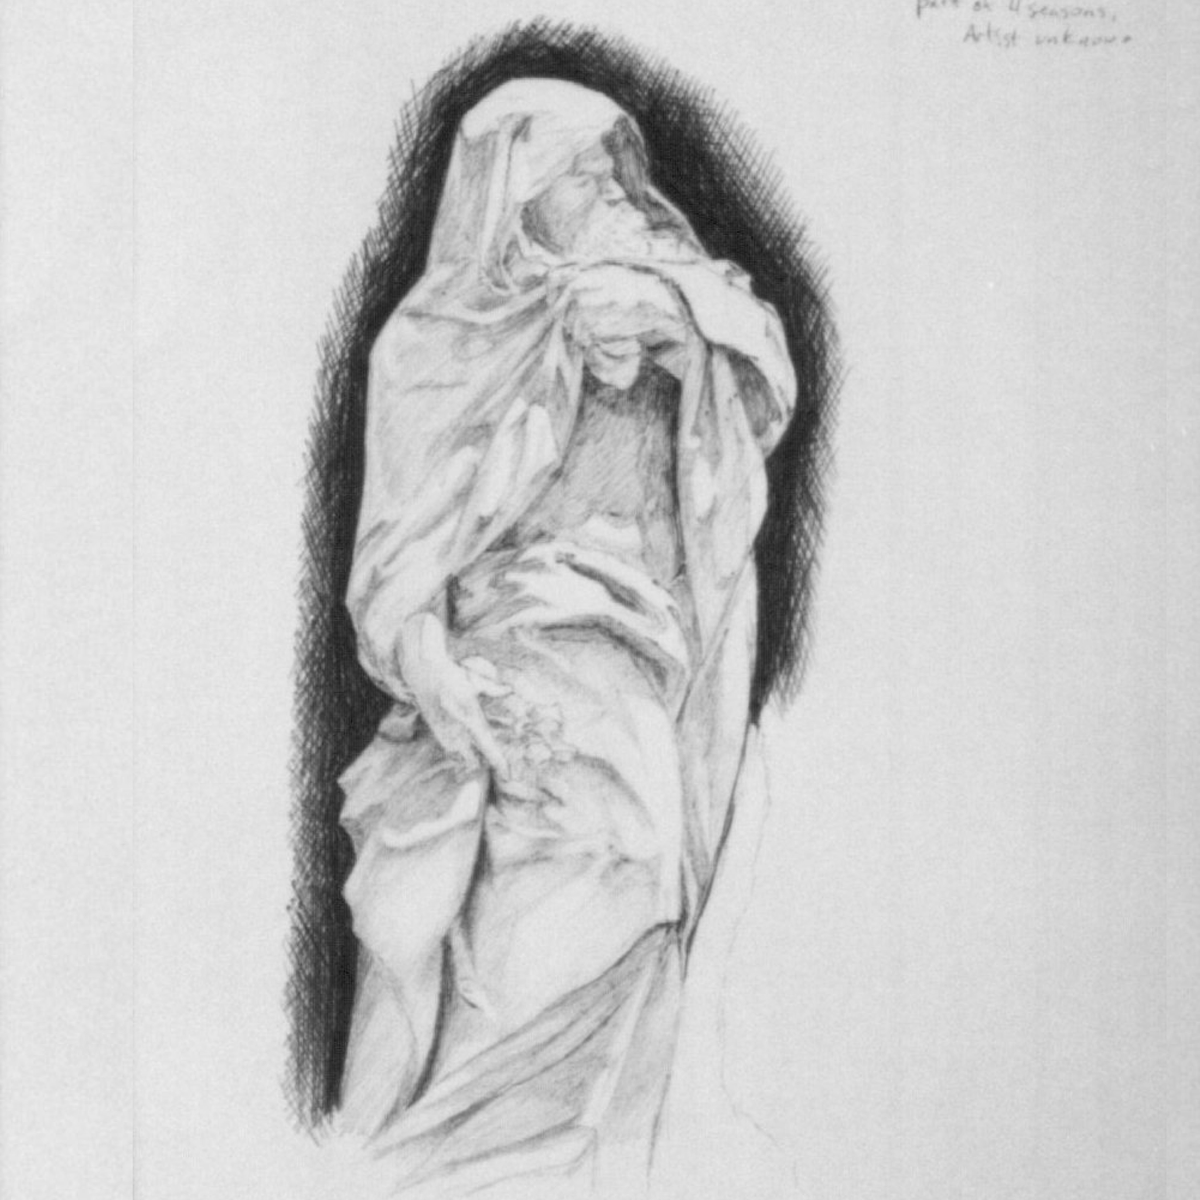 And, of course, statues in parks and museums @philamuseum #drawing #figurestudies #statues #ArtistOnTwitterpic.twitter.com/wY1qDmYE77